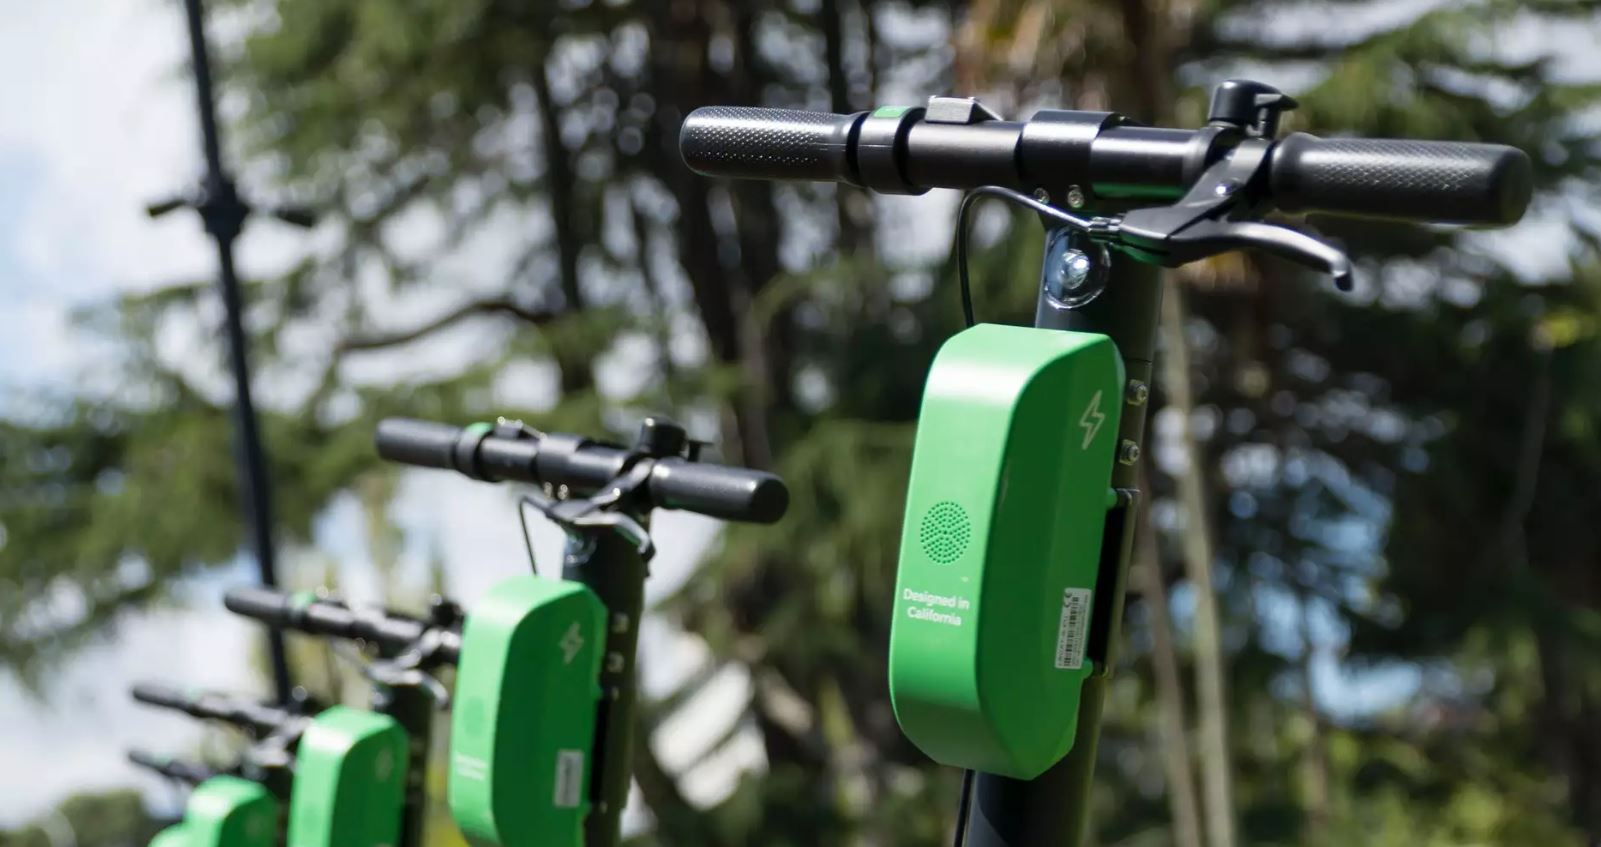 Green Scooters Invade Local Cities!